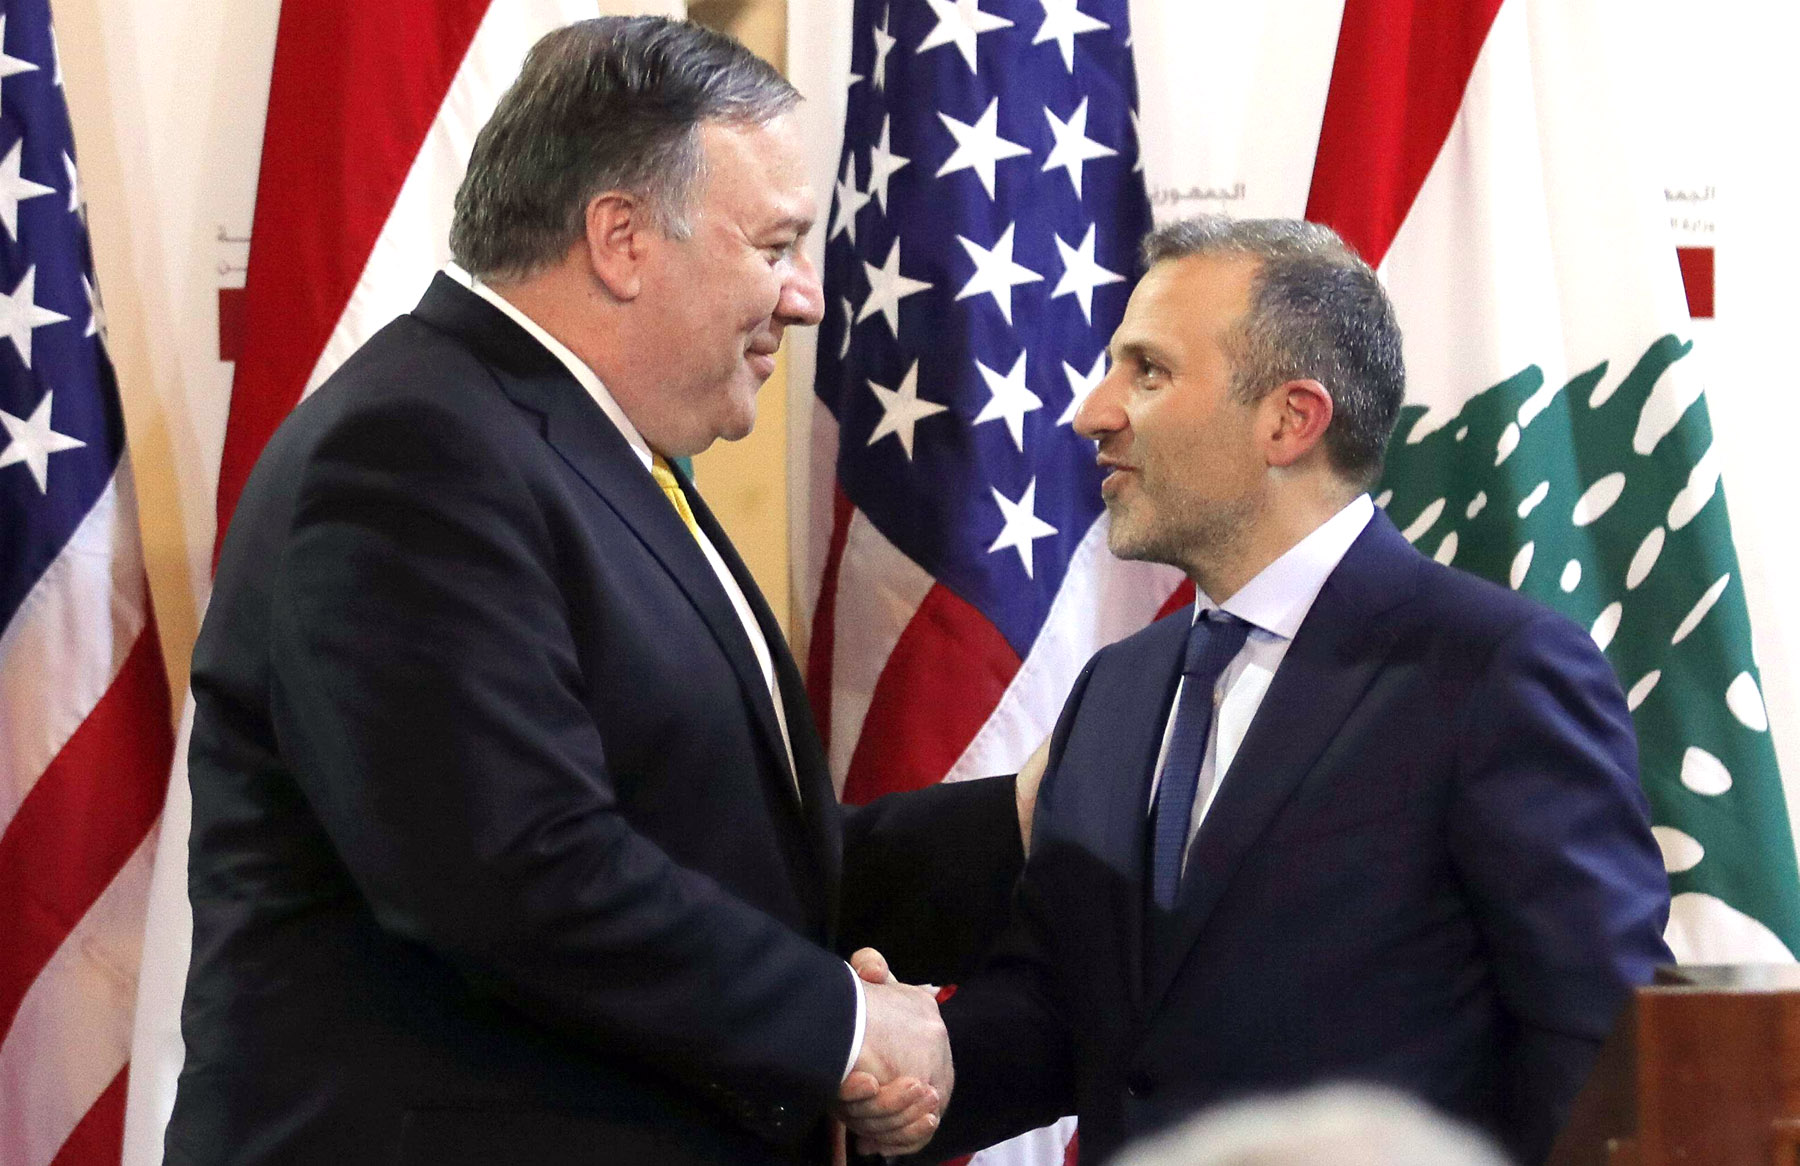 US Secretary of State Mike Pompeo (L) shakes hands with Lebanese Foreign Minister Gebran Bassil after a public statement in Beirut, last March. (AP)